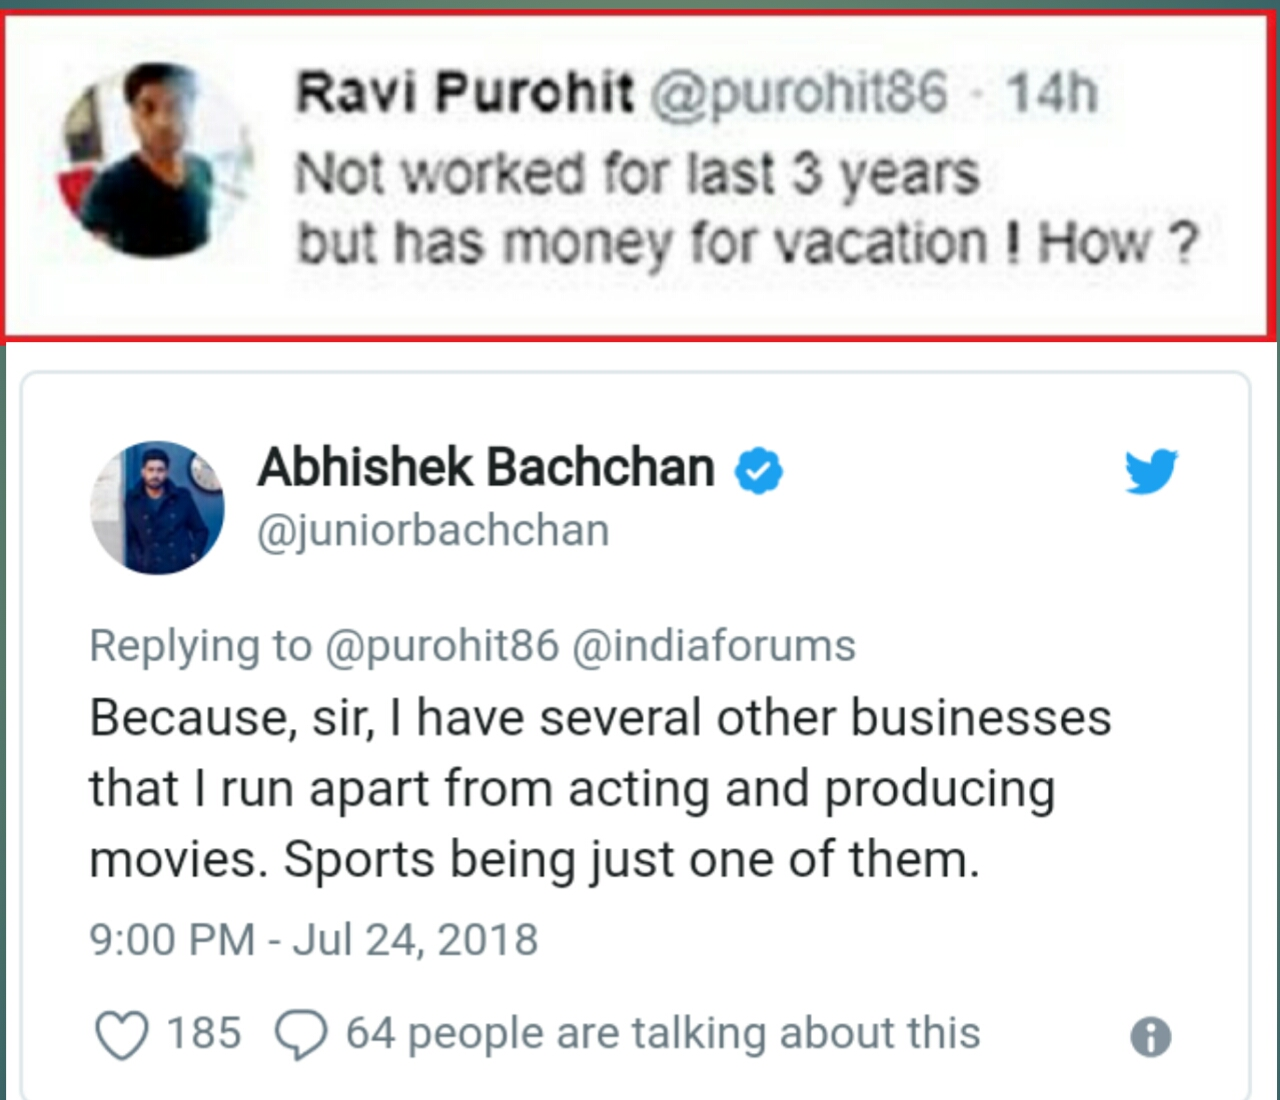 What does Abhishek Bachchan do for a living